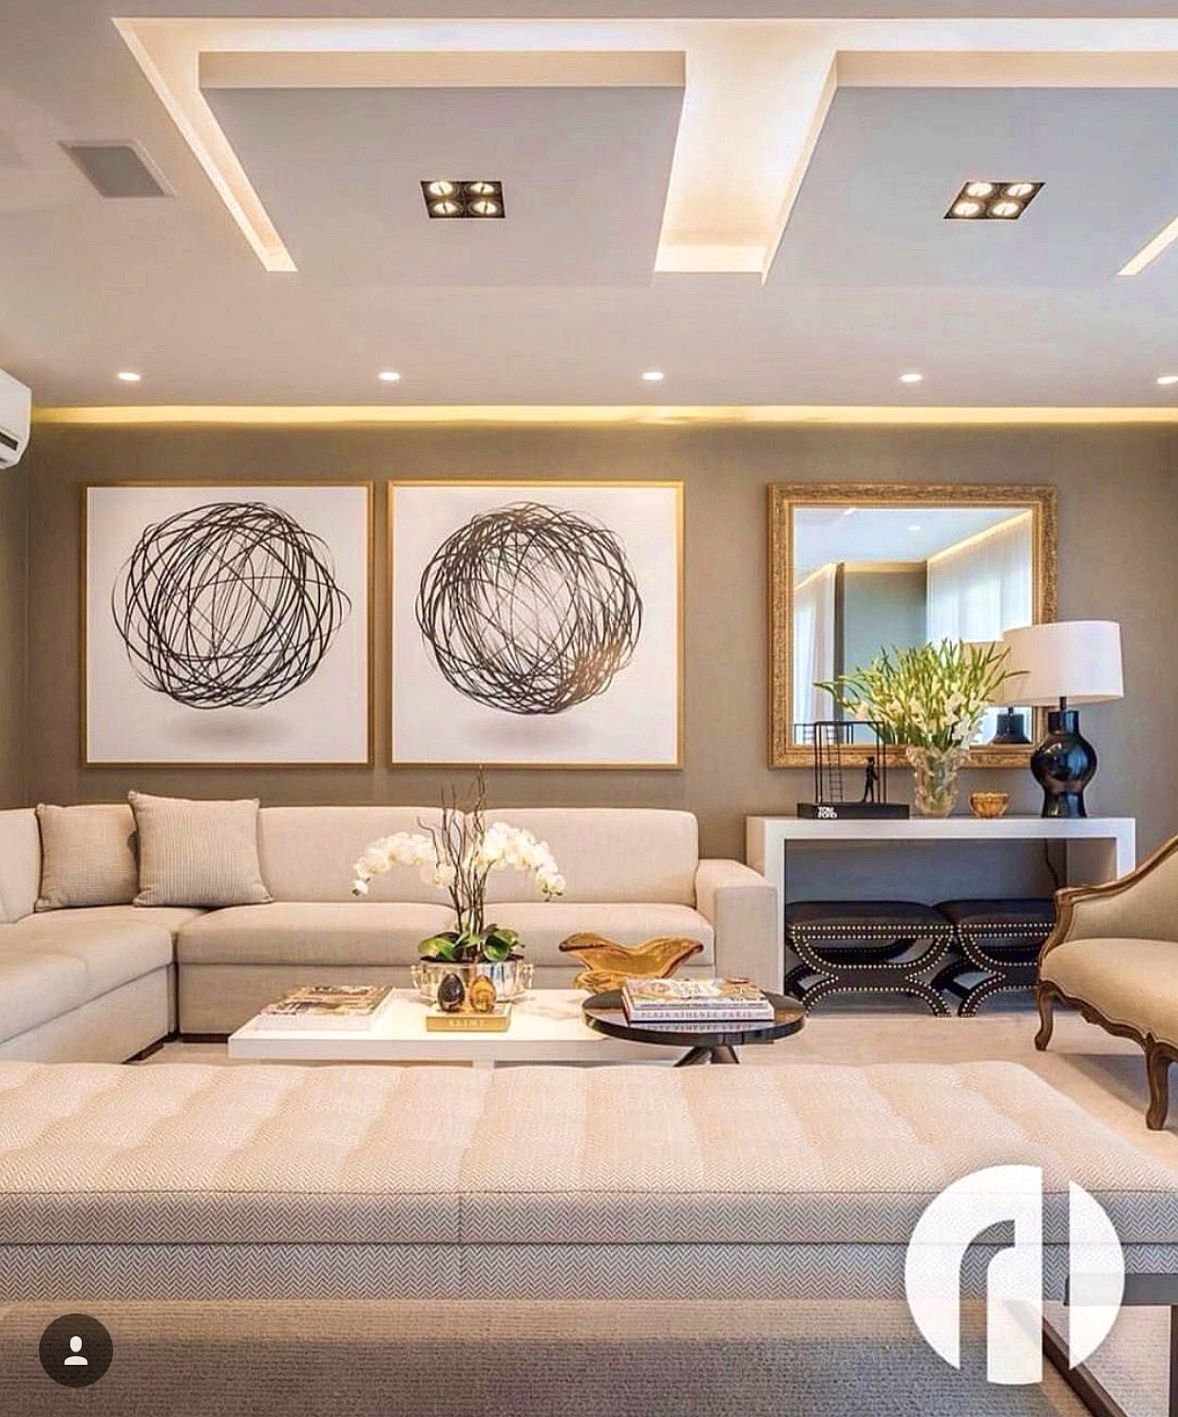 Easy living room designs searching for design ideas hunting and inspiring decor  redecorating also purple interior color schemes wall paint rh pinterest